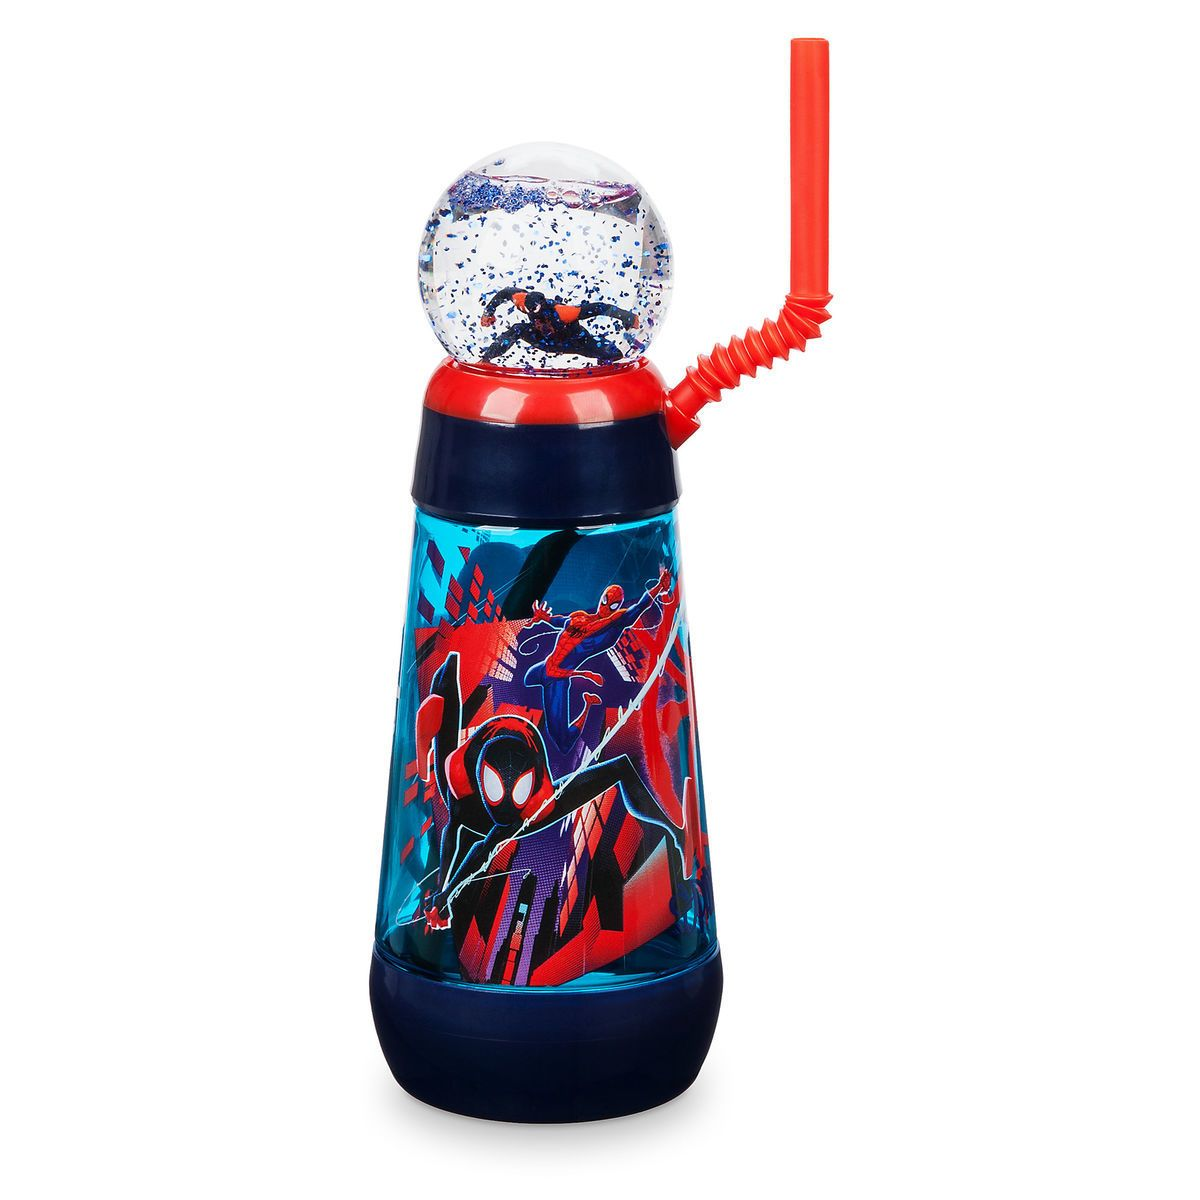 a800999524 Spider-Man: Into the Spider-Verse Snowglobe Tumbler with Straw in ...